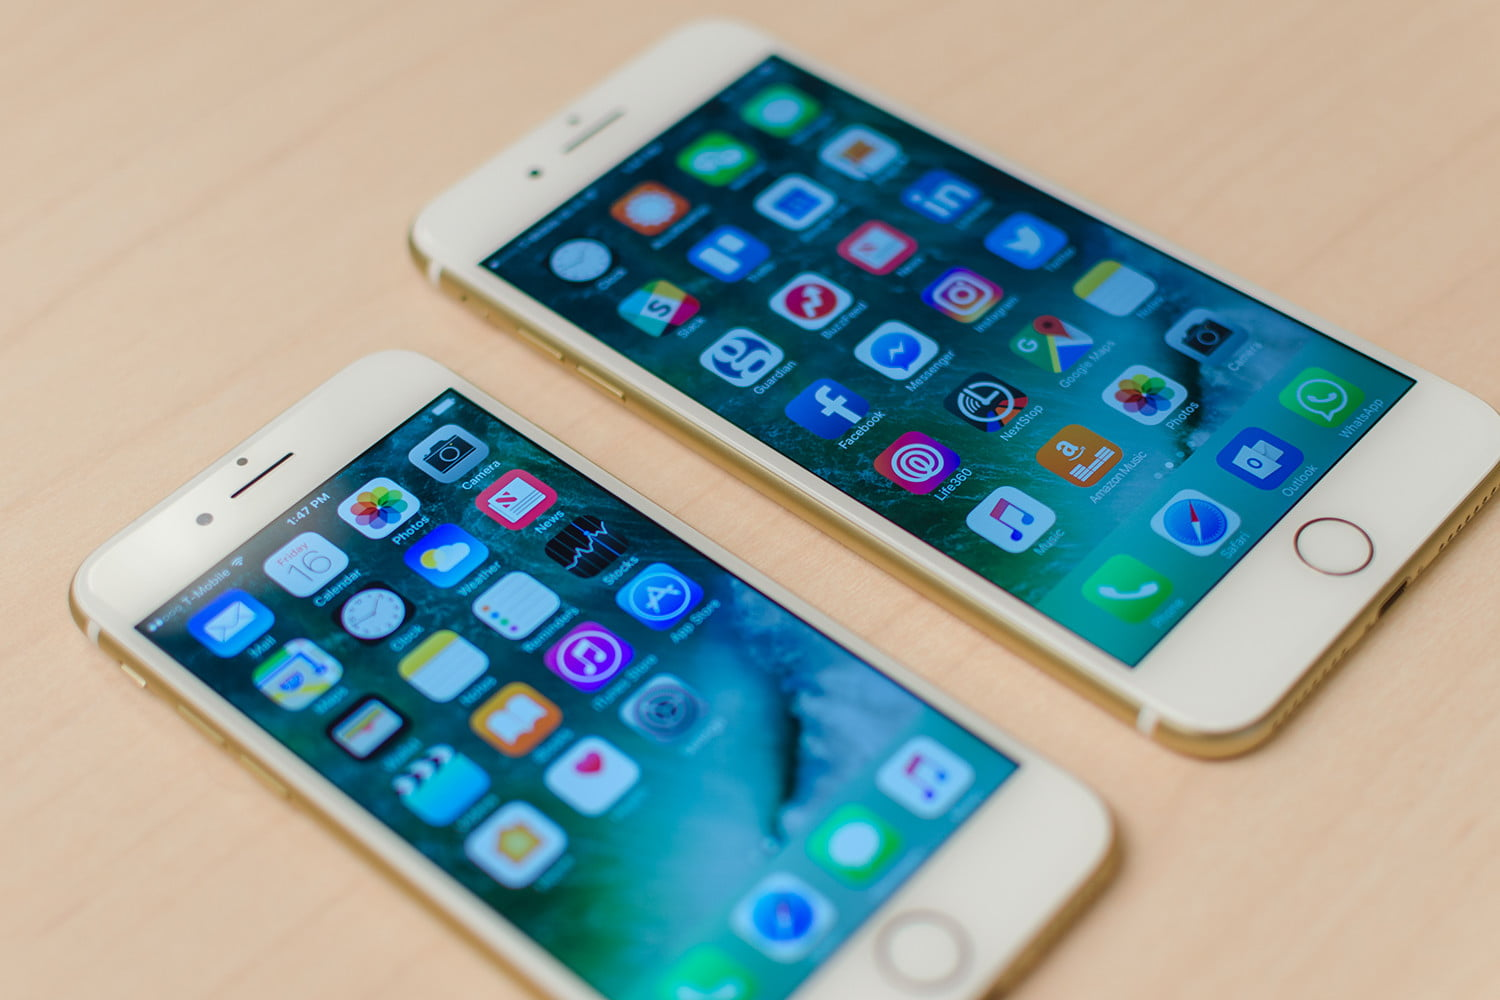 iPhone 7 and iPhone 7 Plus: Hands on, Specs, Features